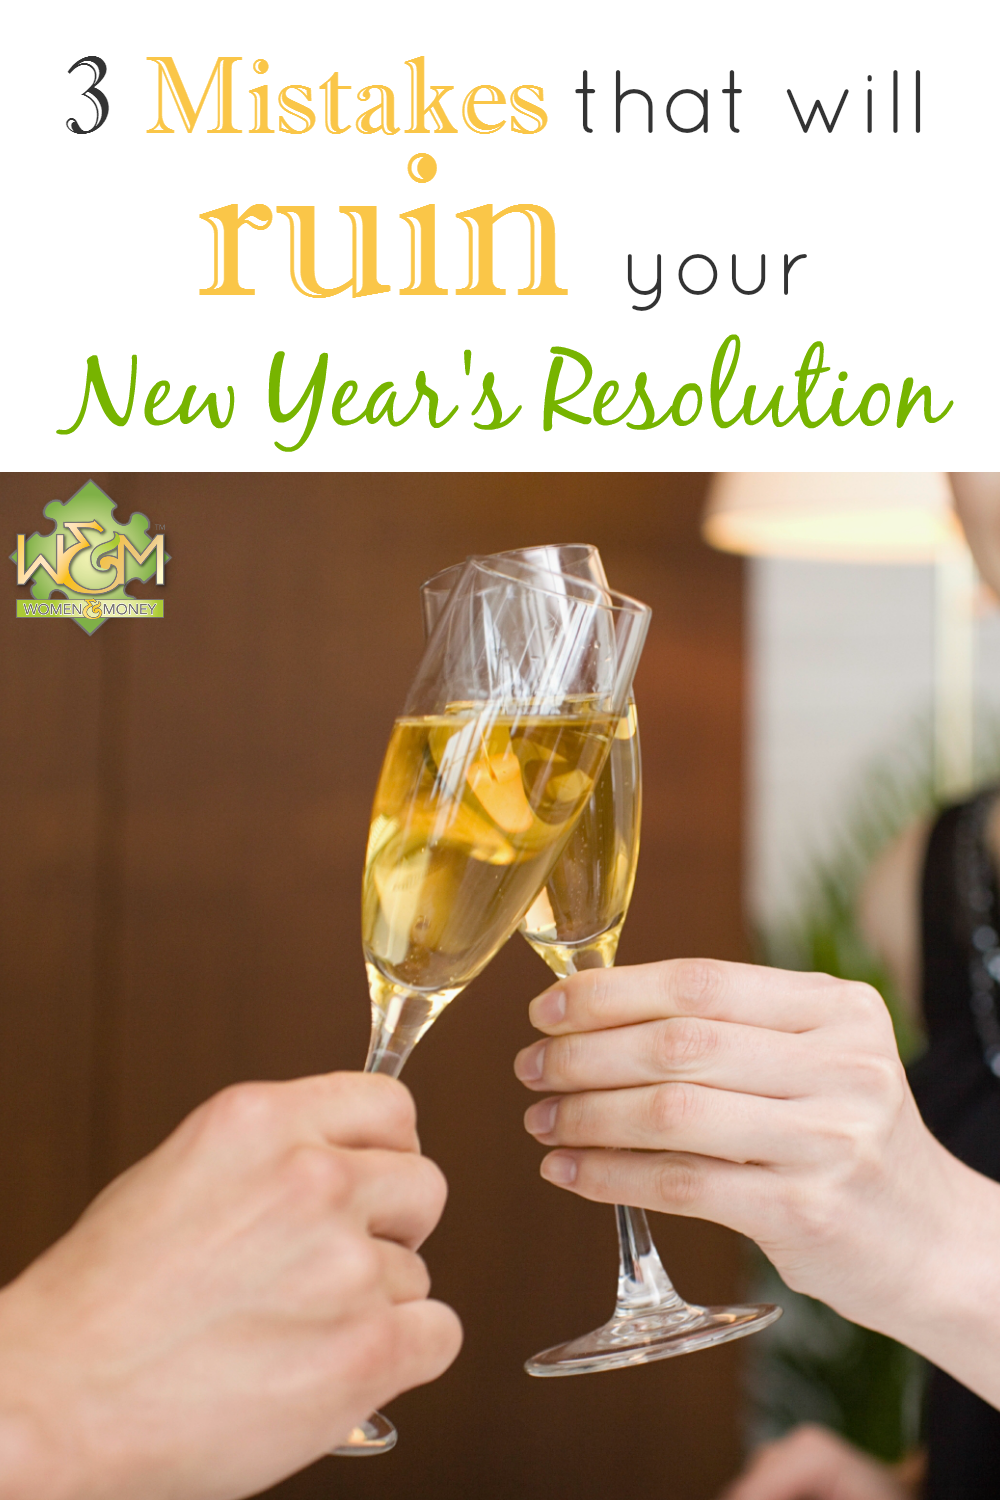 3 mistakes that will ruin your New Year's resolution